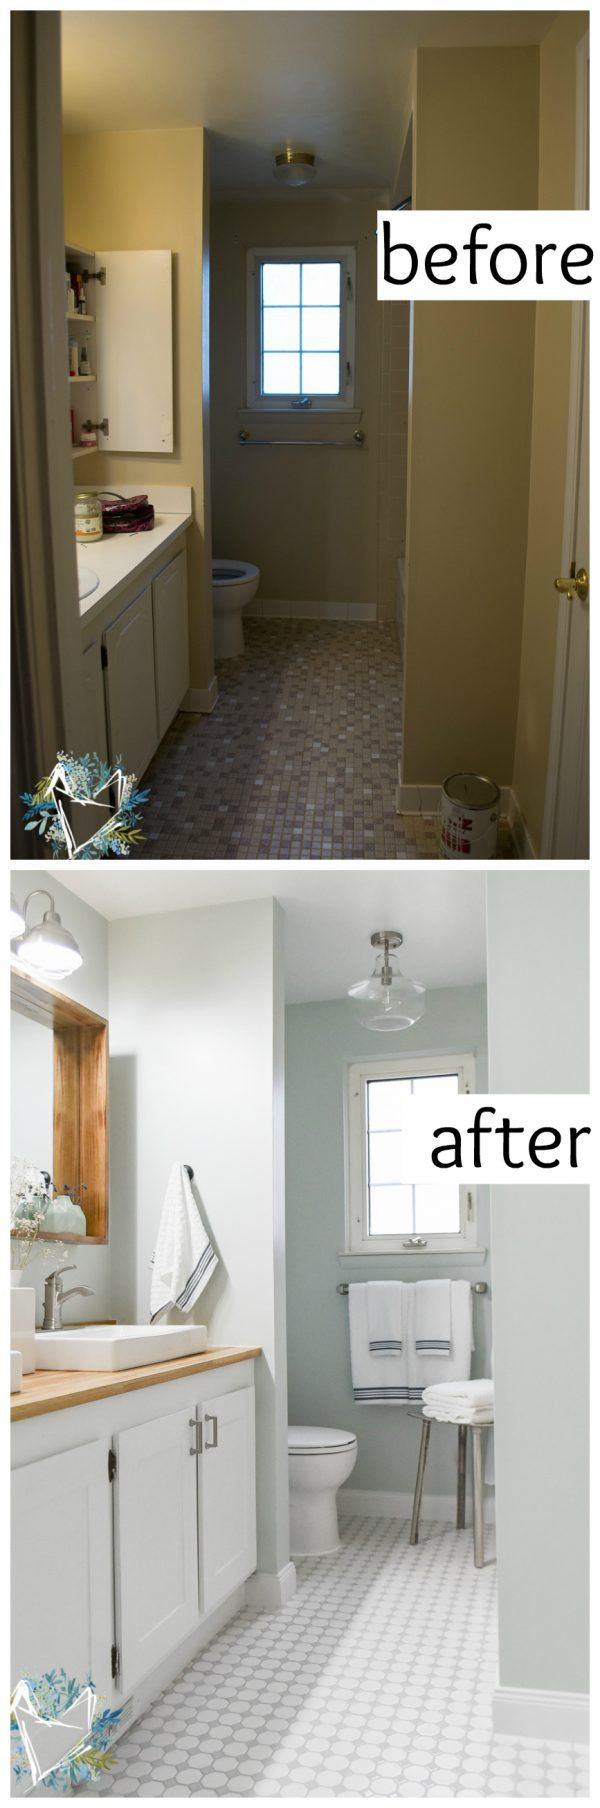 Bathroom Remodeling Ideas On A Budget best 25+ budget bathroom remodel ideas on pinterest | guest